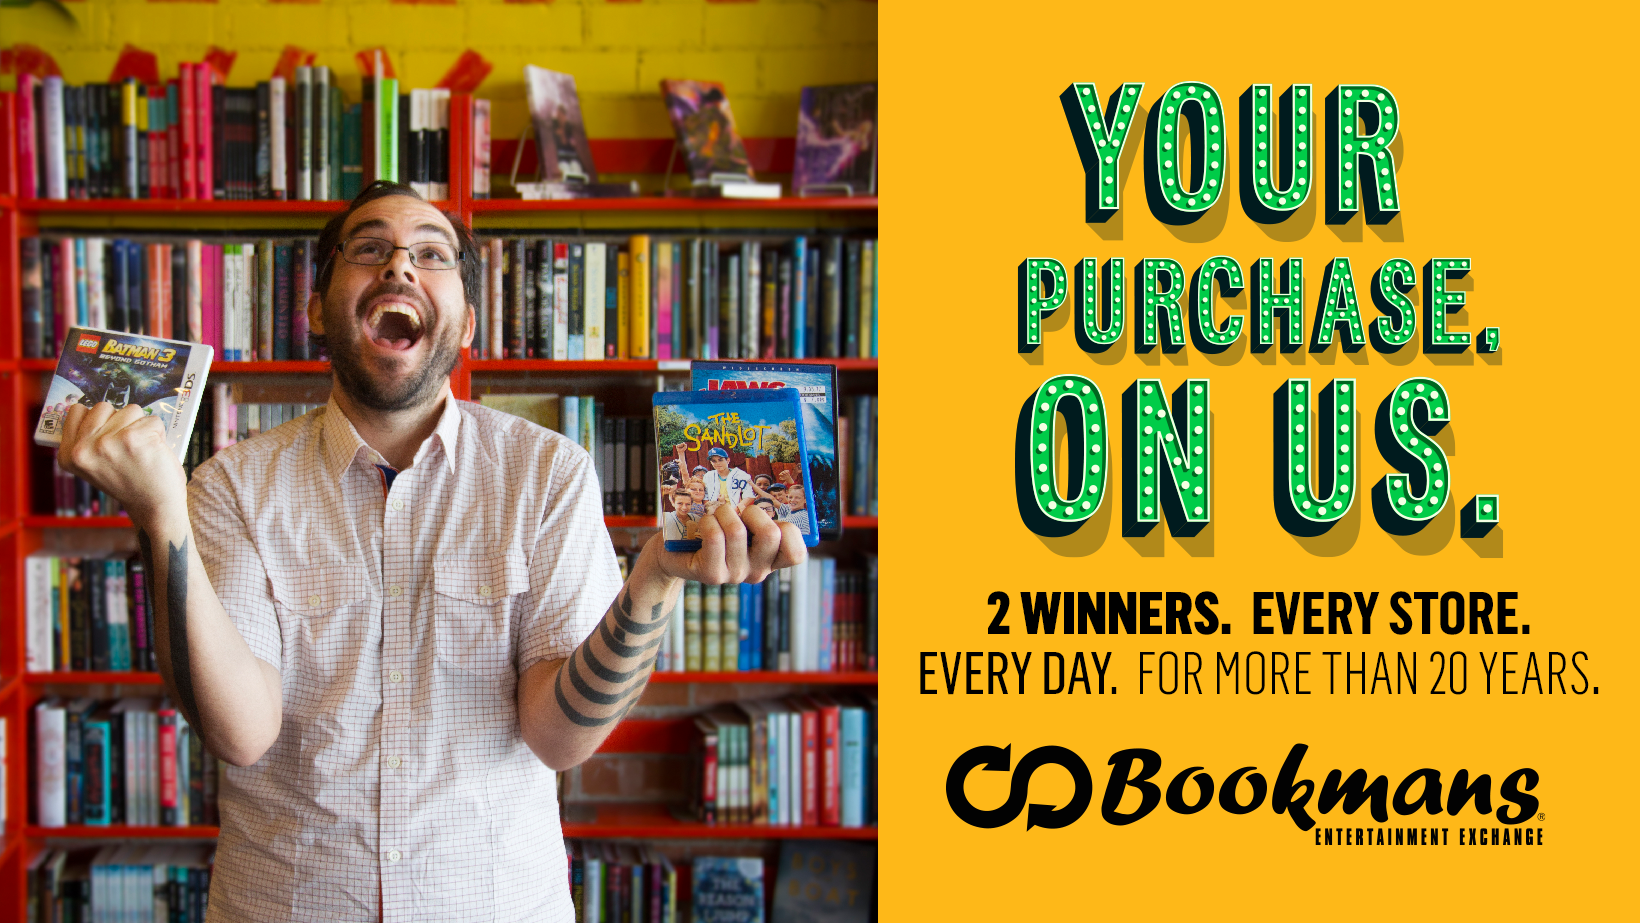 Excited man winning free video games and movies at Bookmans